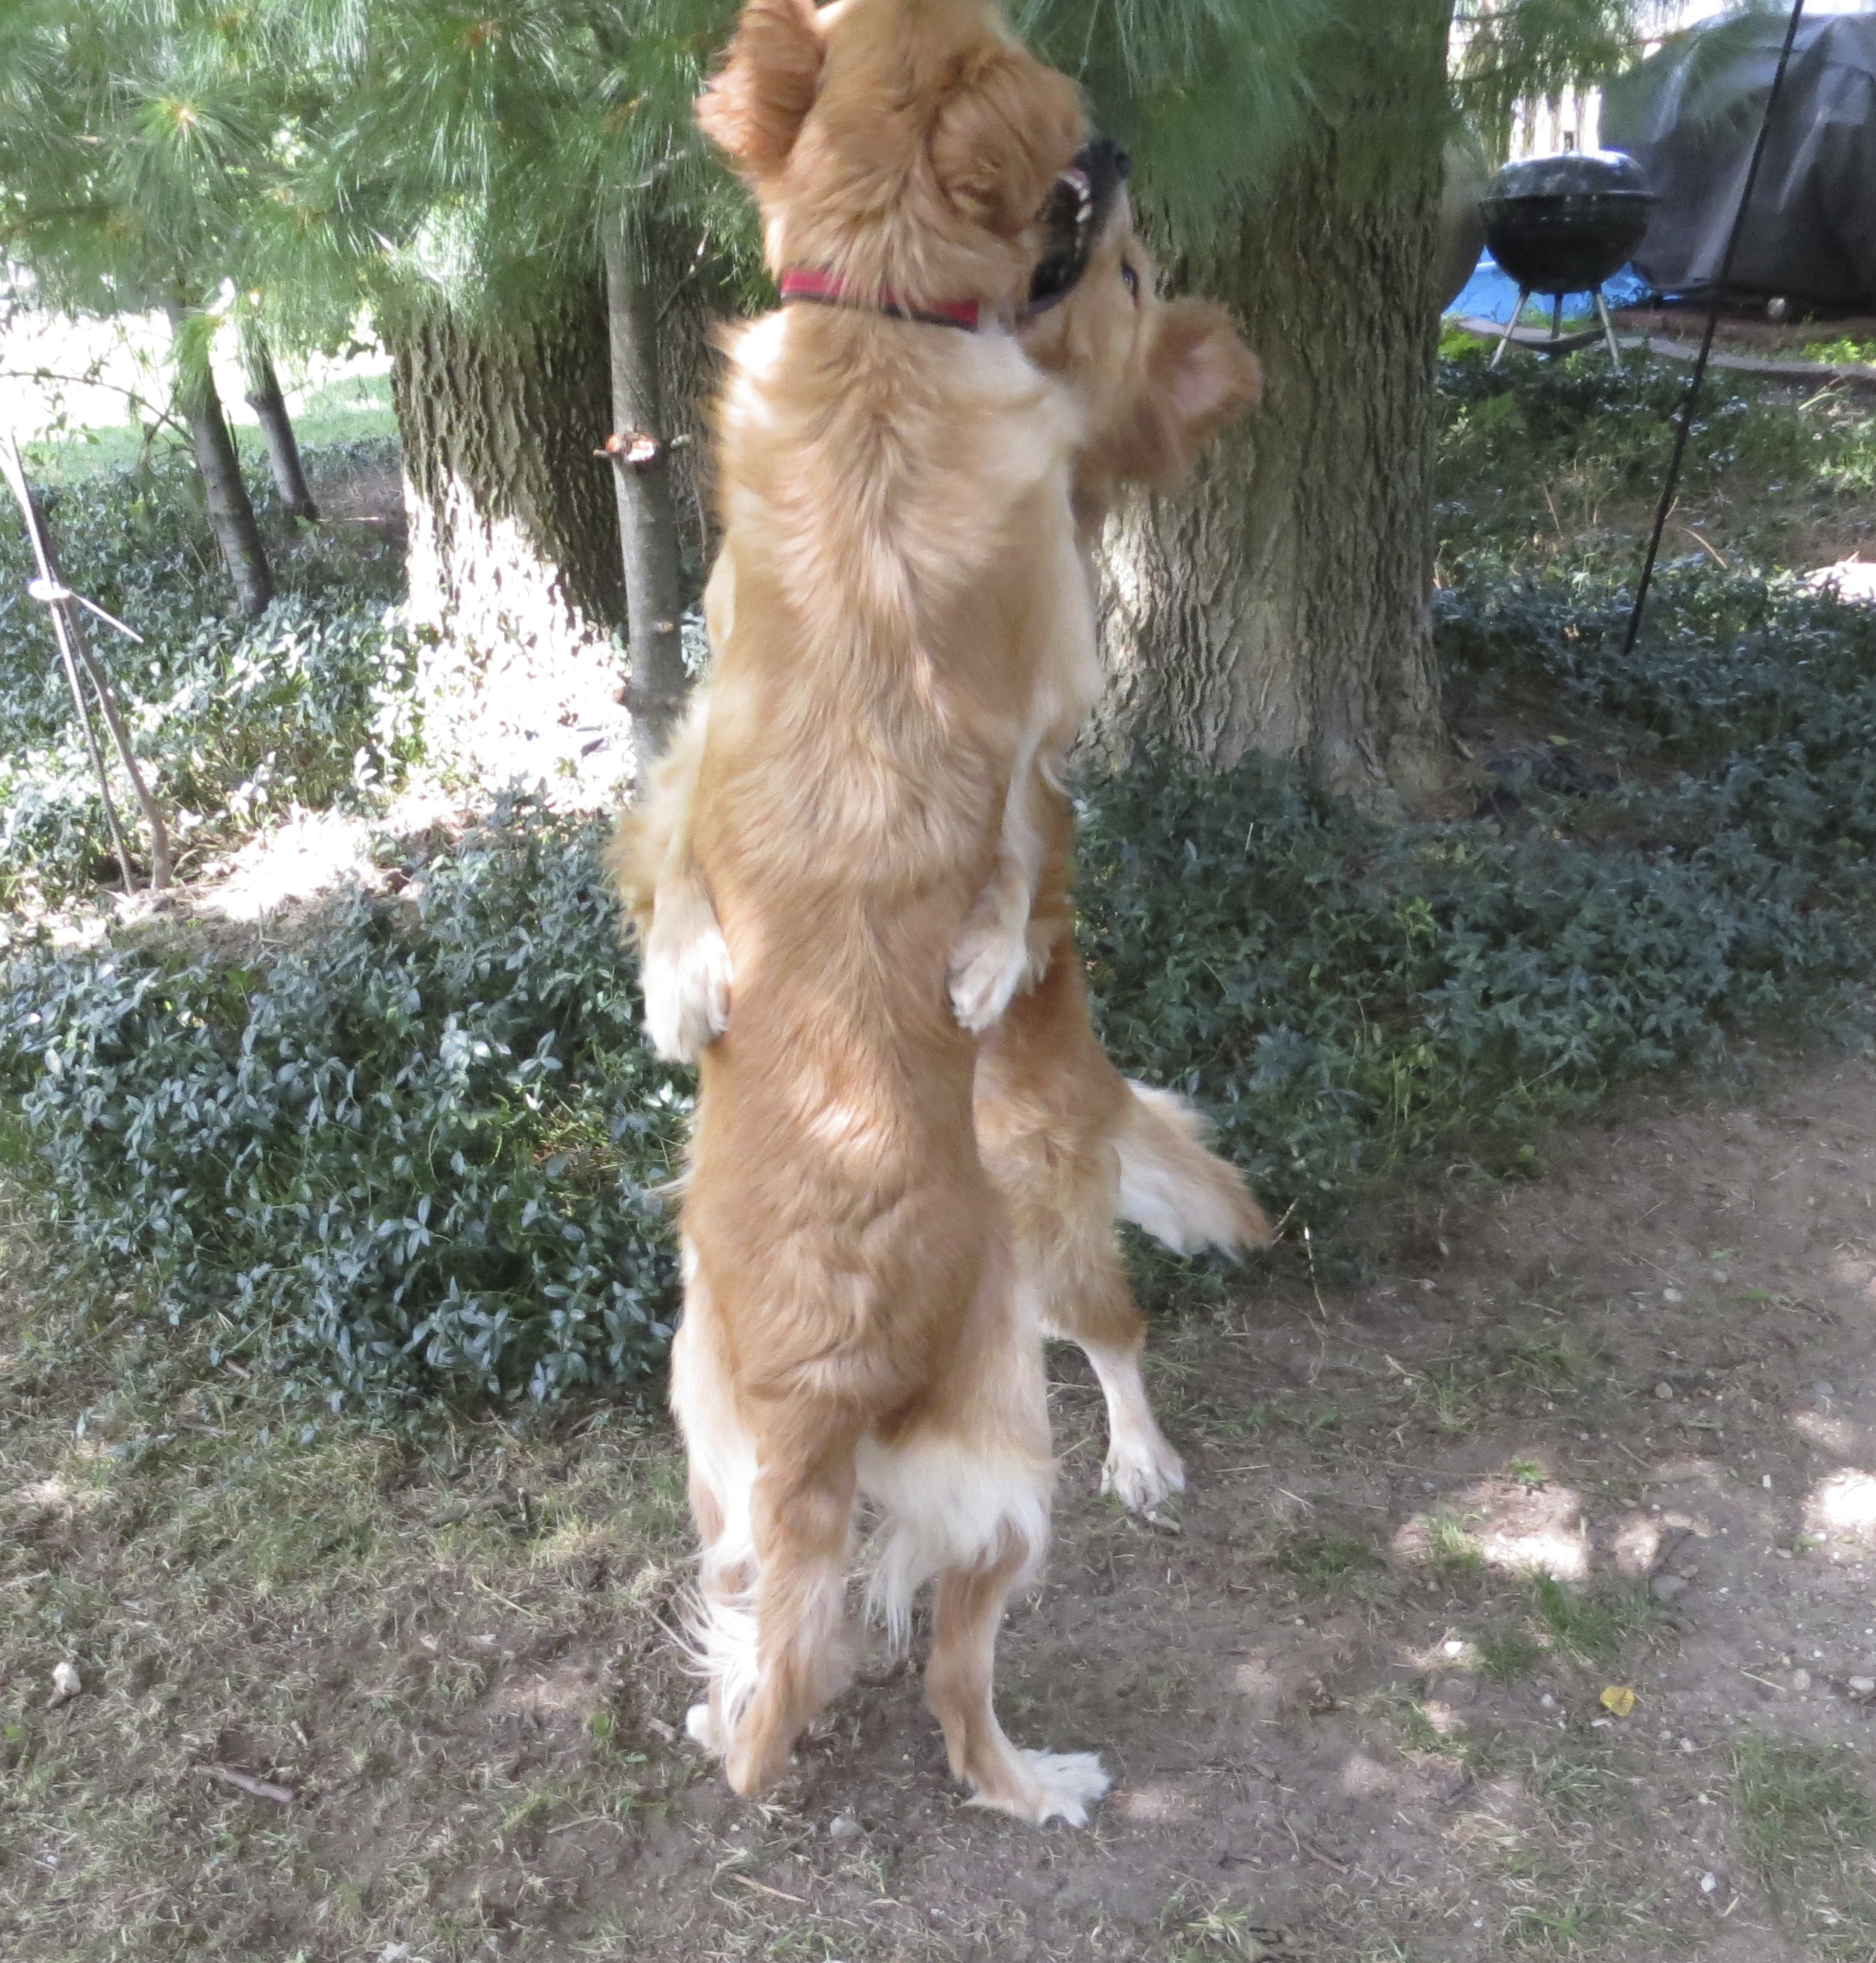 Two Golden Retrievers Standing On Their Hind Legs And Hugging And Play Biting One Another